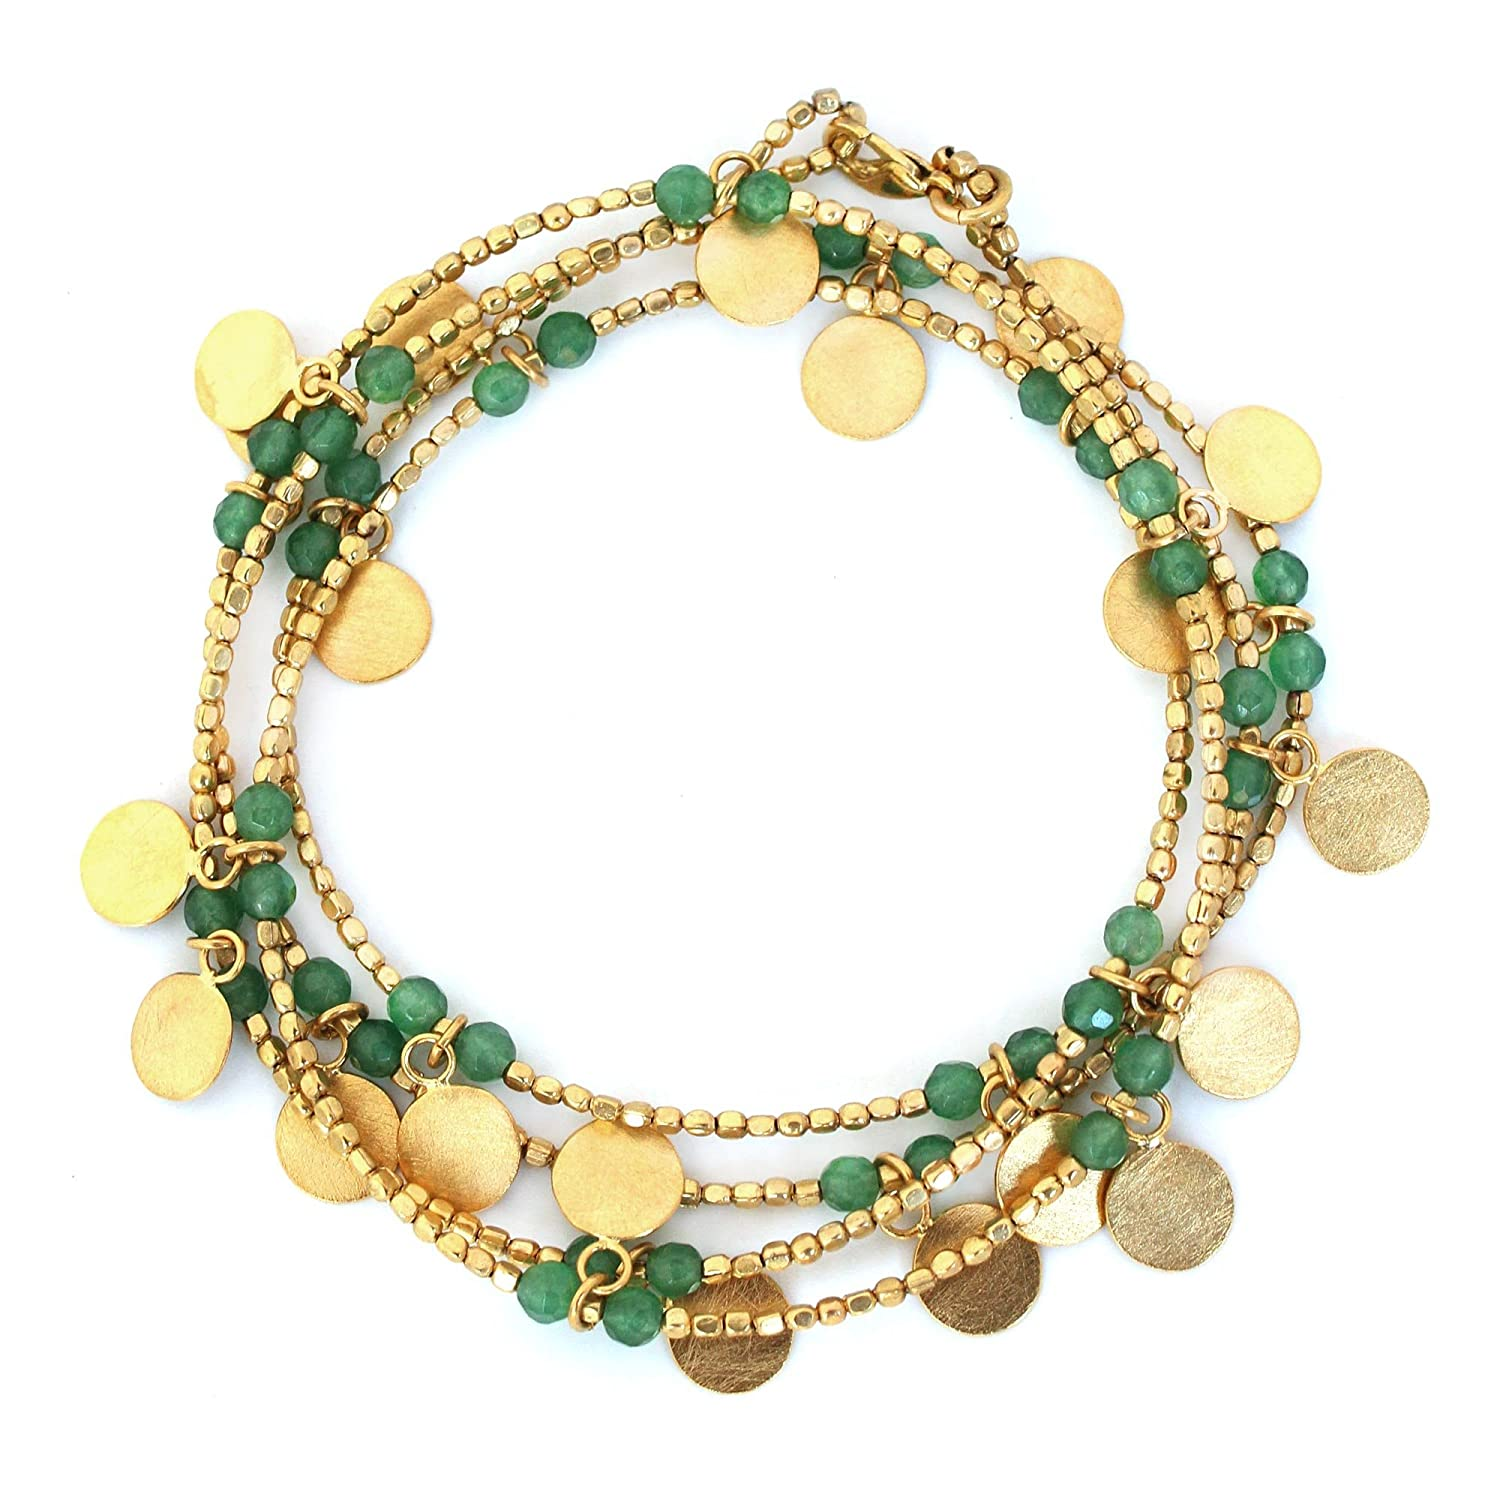 "NOVICA 24k Gold Plated Brass and Quartz Green Beaded Wrap Bracelet, 37"", 'Verdant Suns'"